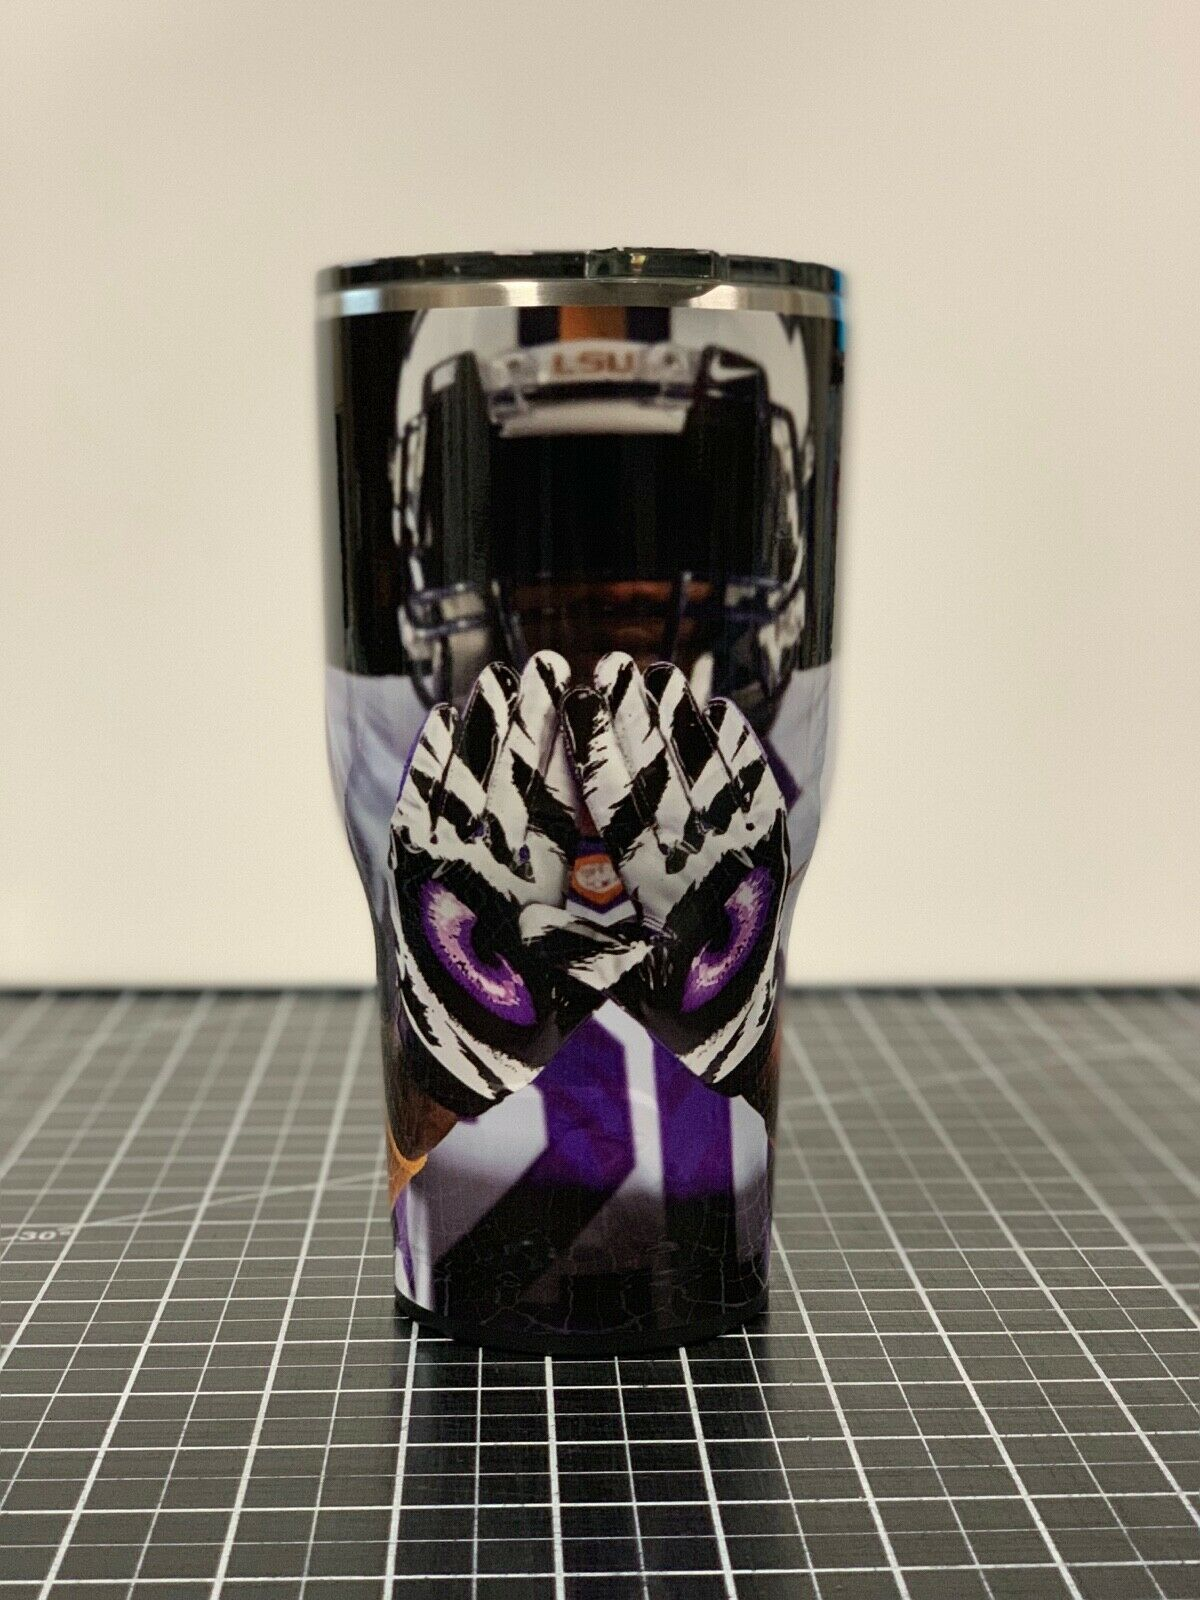 Yeti 20 20 20 OZ 30 OZ LSU Tigers Football Wrapped Cup Rambler Tumbler 5490f3